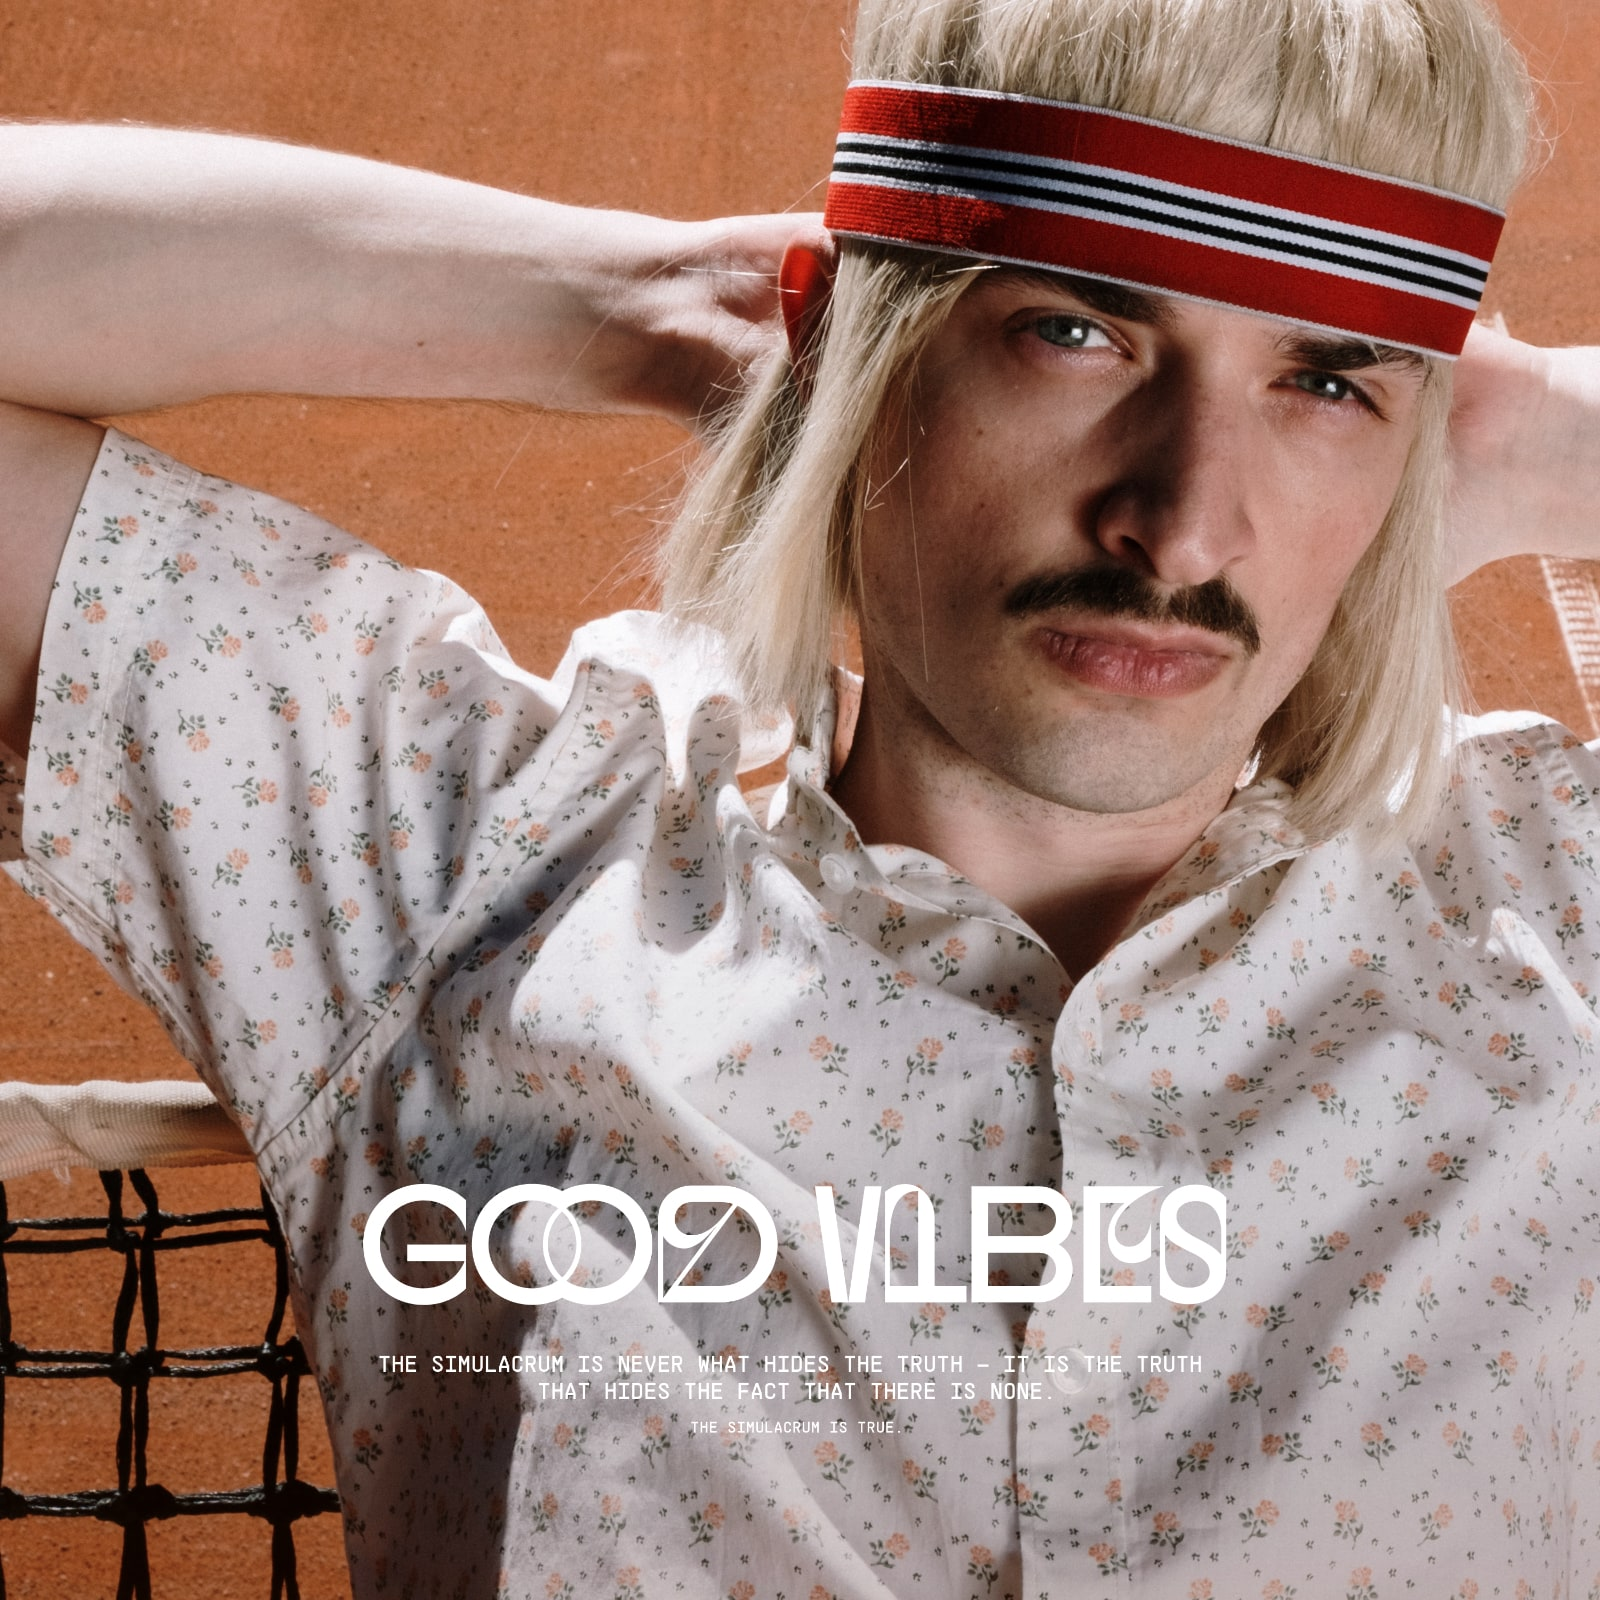 Good Vibes Album Cover Image